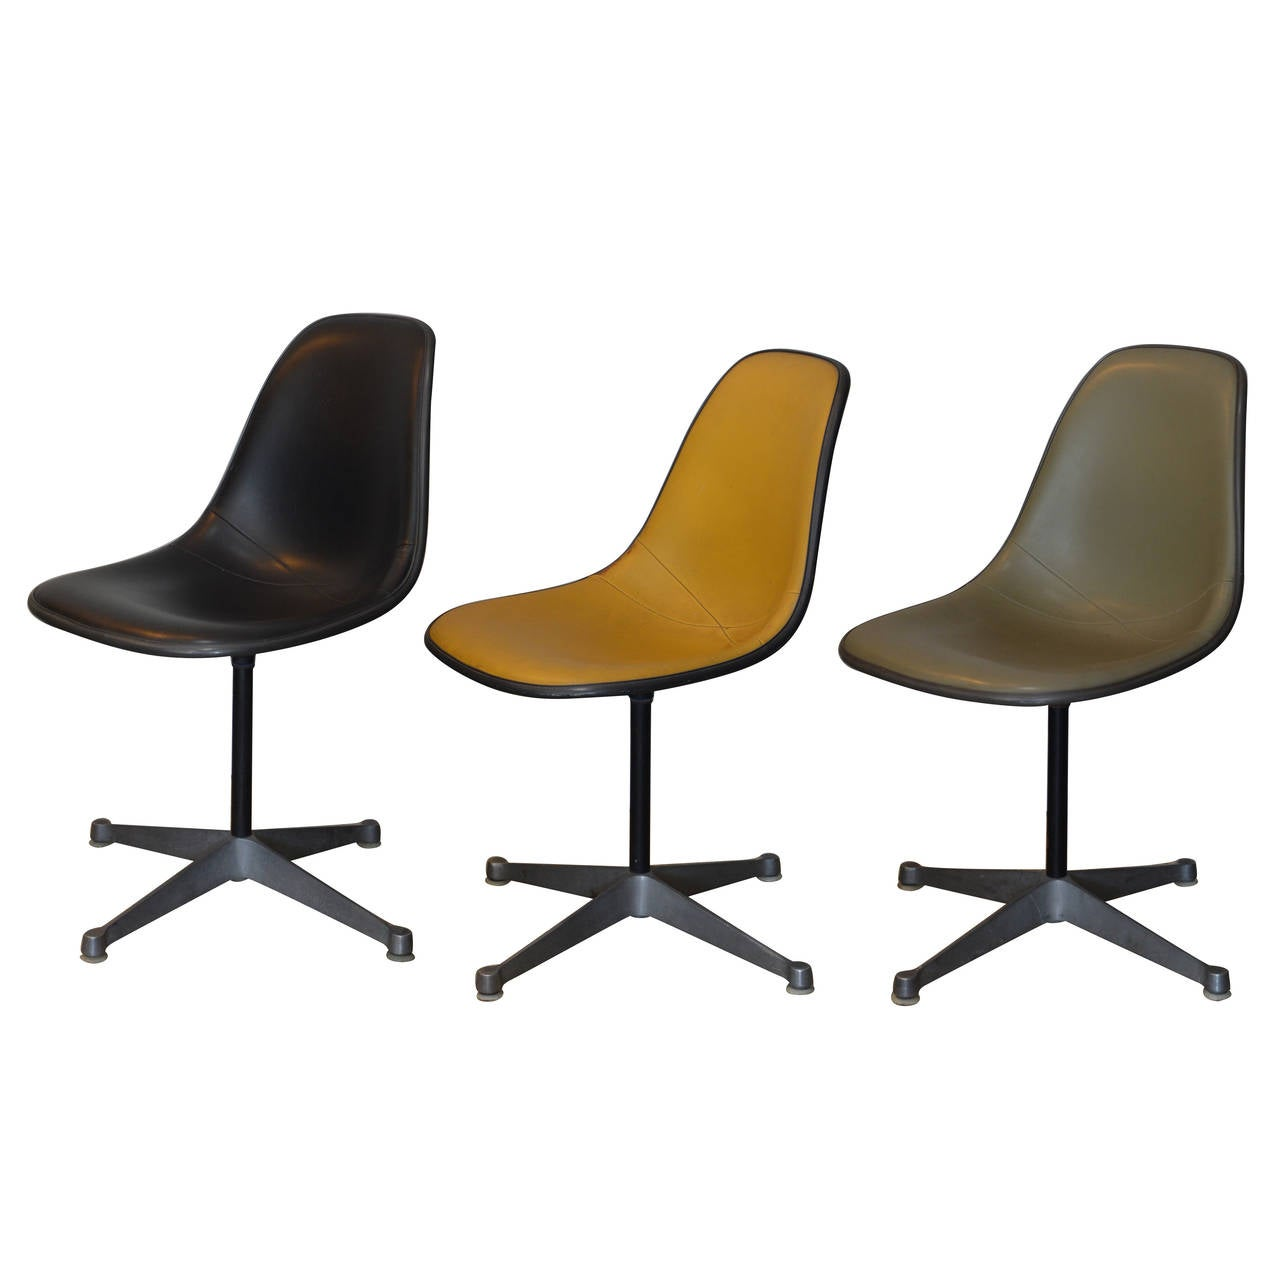 Set of Three Vintage Swiveling Chairs by Eames for Herman Miller